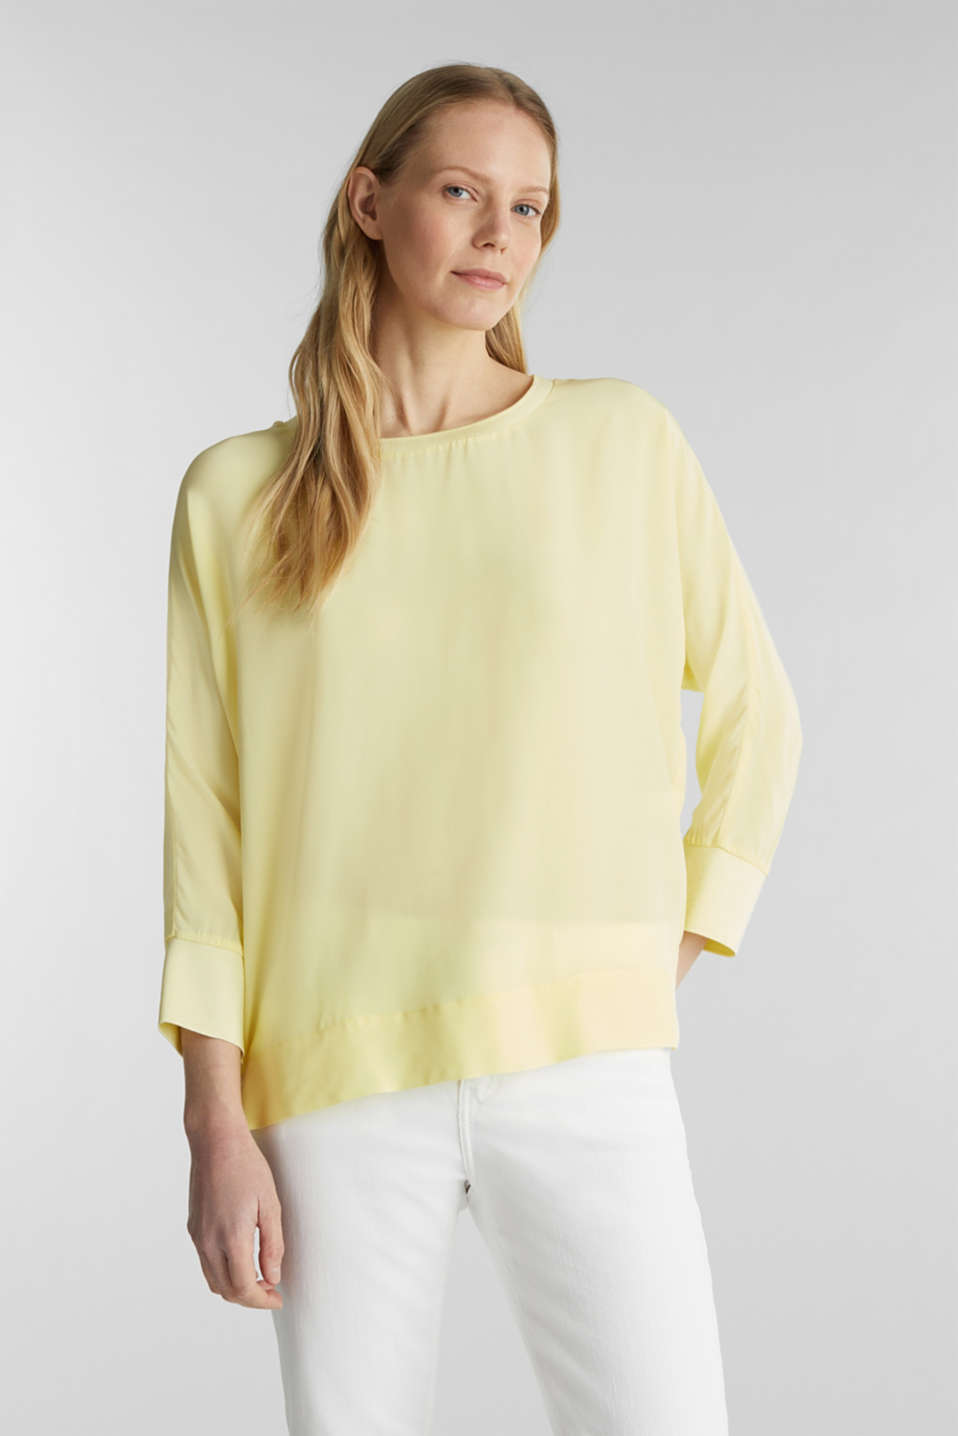 Esprit - Batwing top made of LENZING™ ECOVERO™